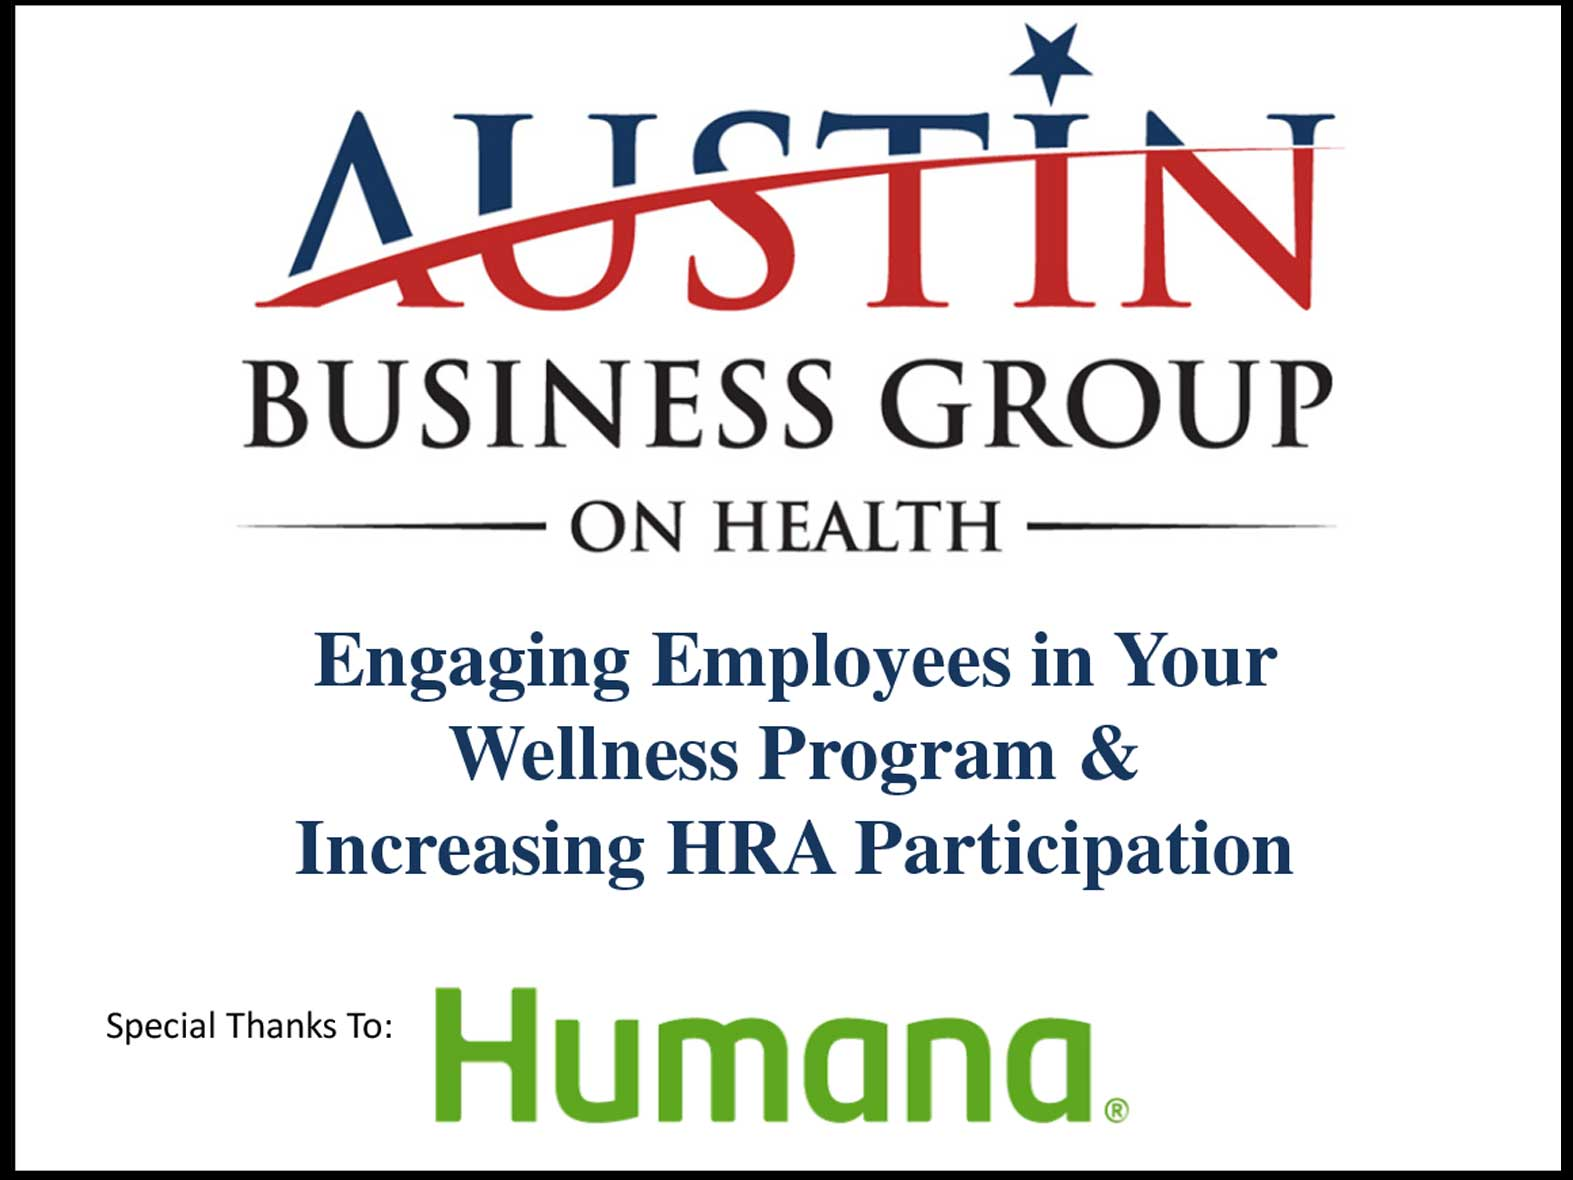 Engaging Employees in Your Wellness Program & Increasing HRA Participation